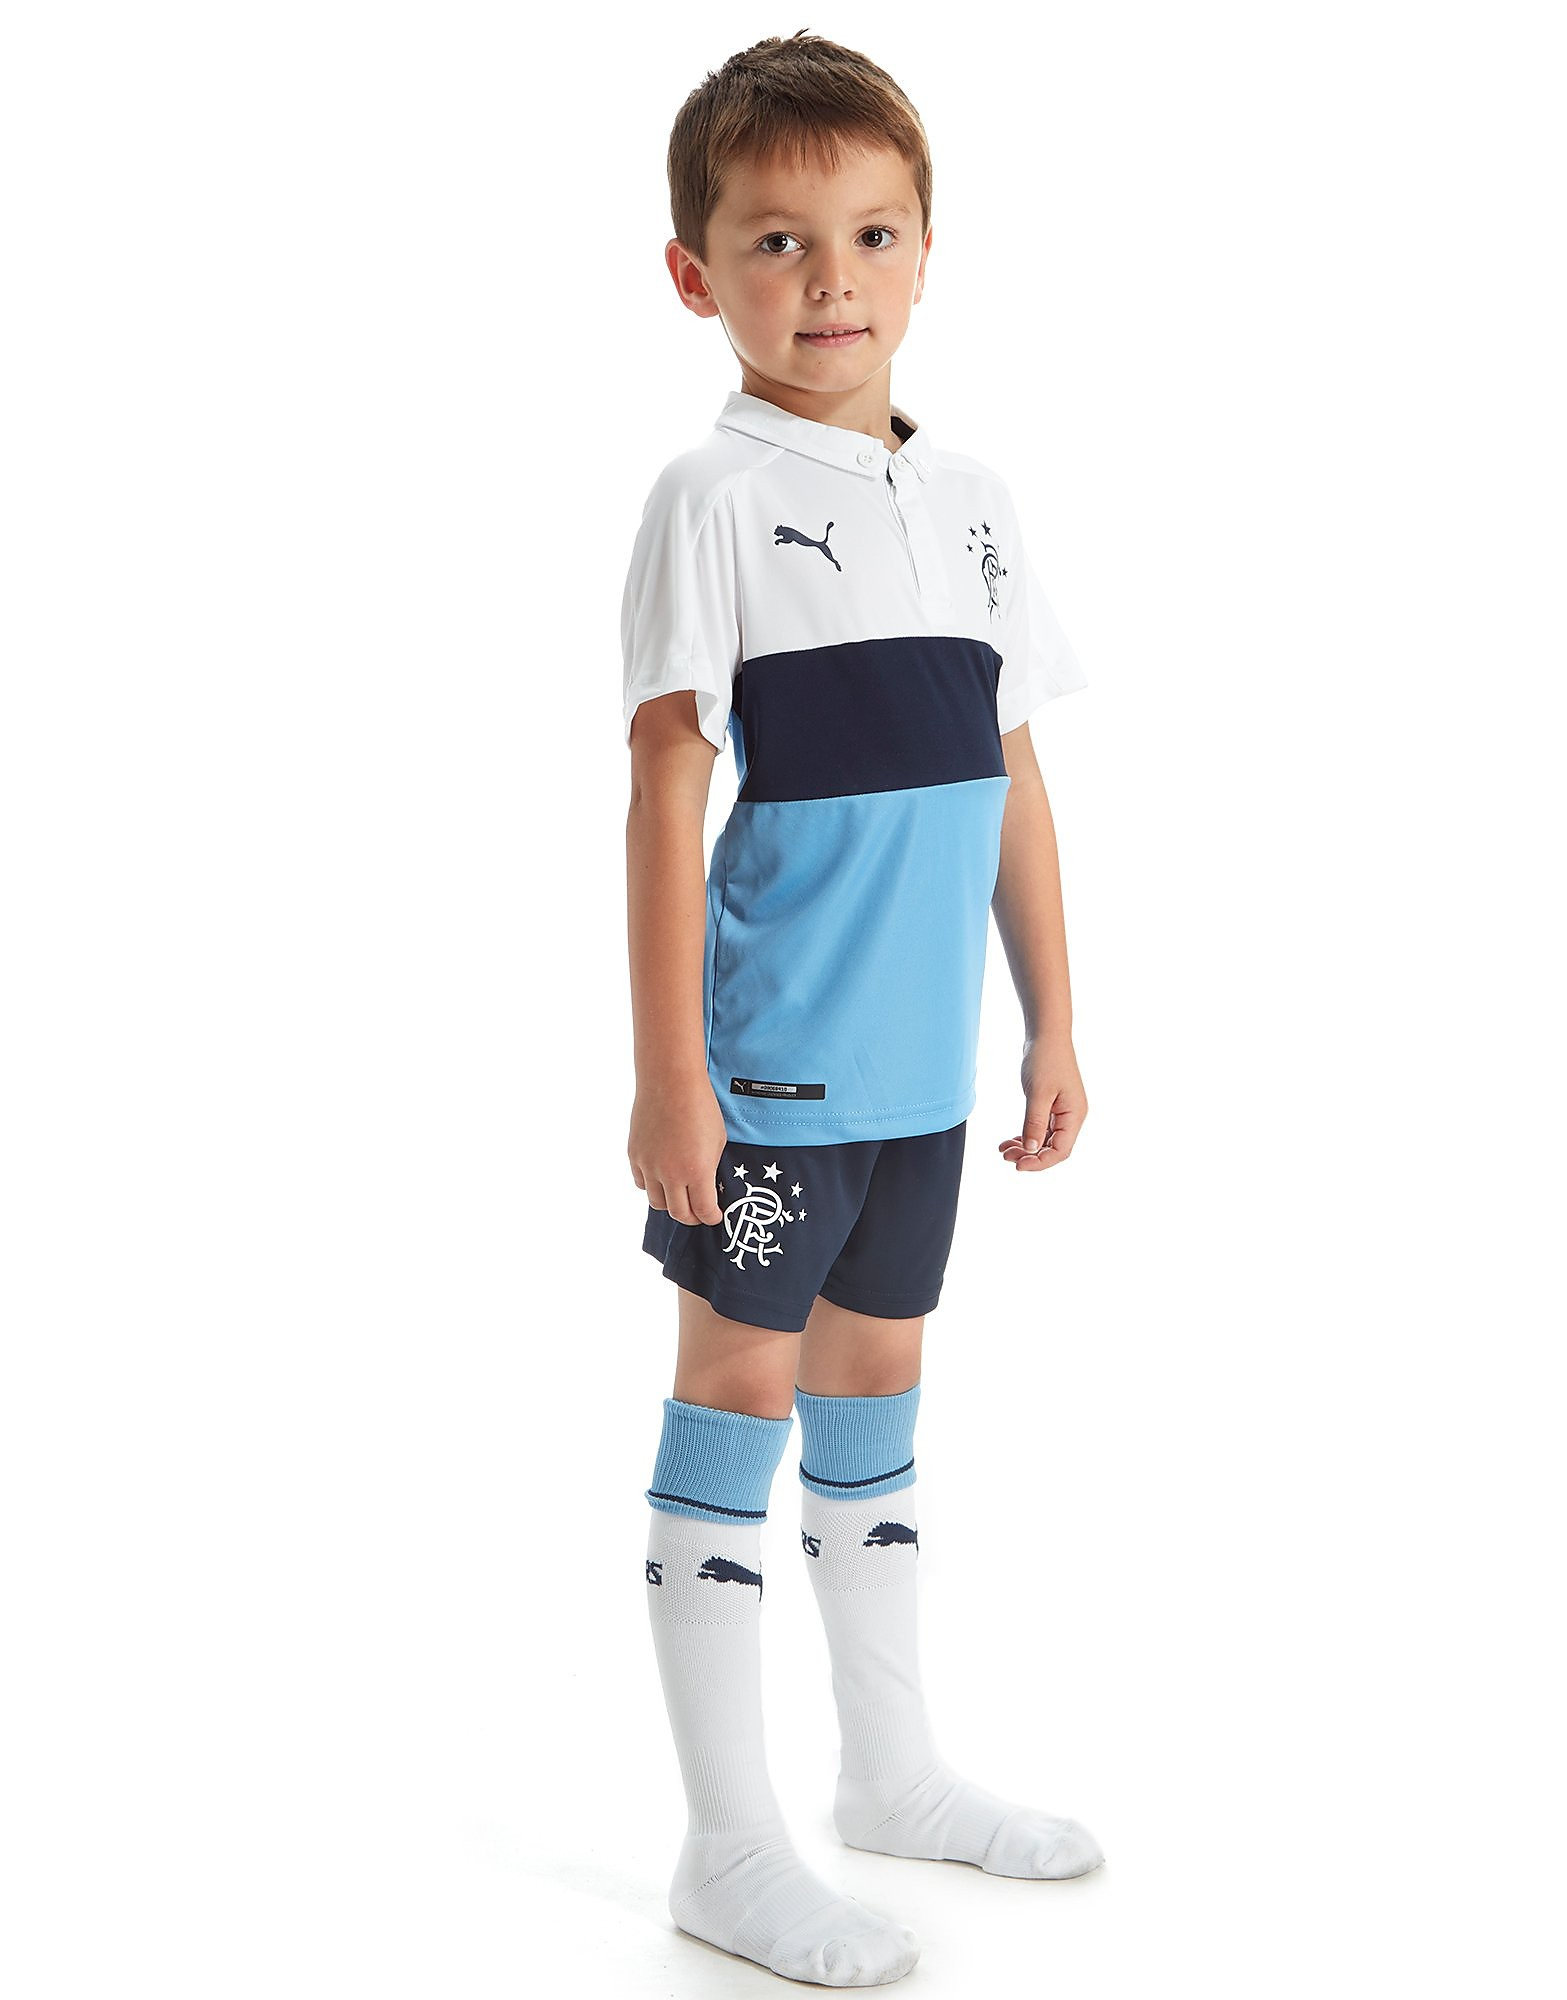 PUMA Rangers FC 2016/17 Third Kit Children